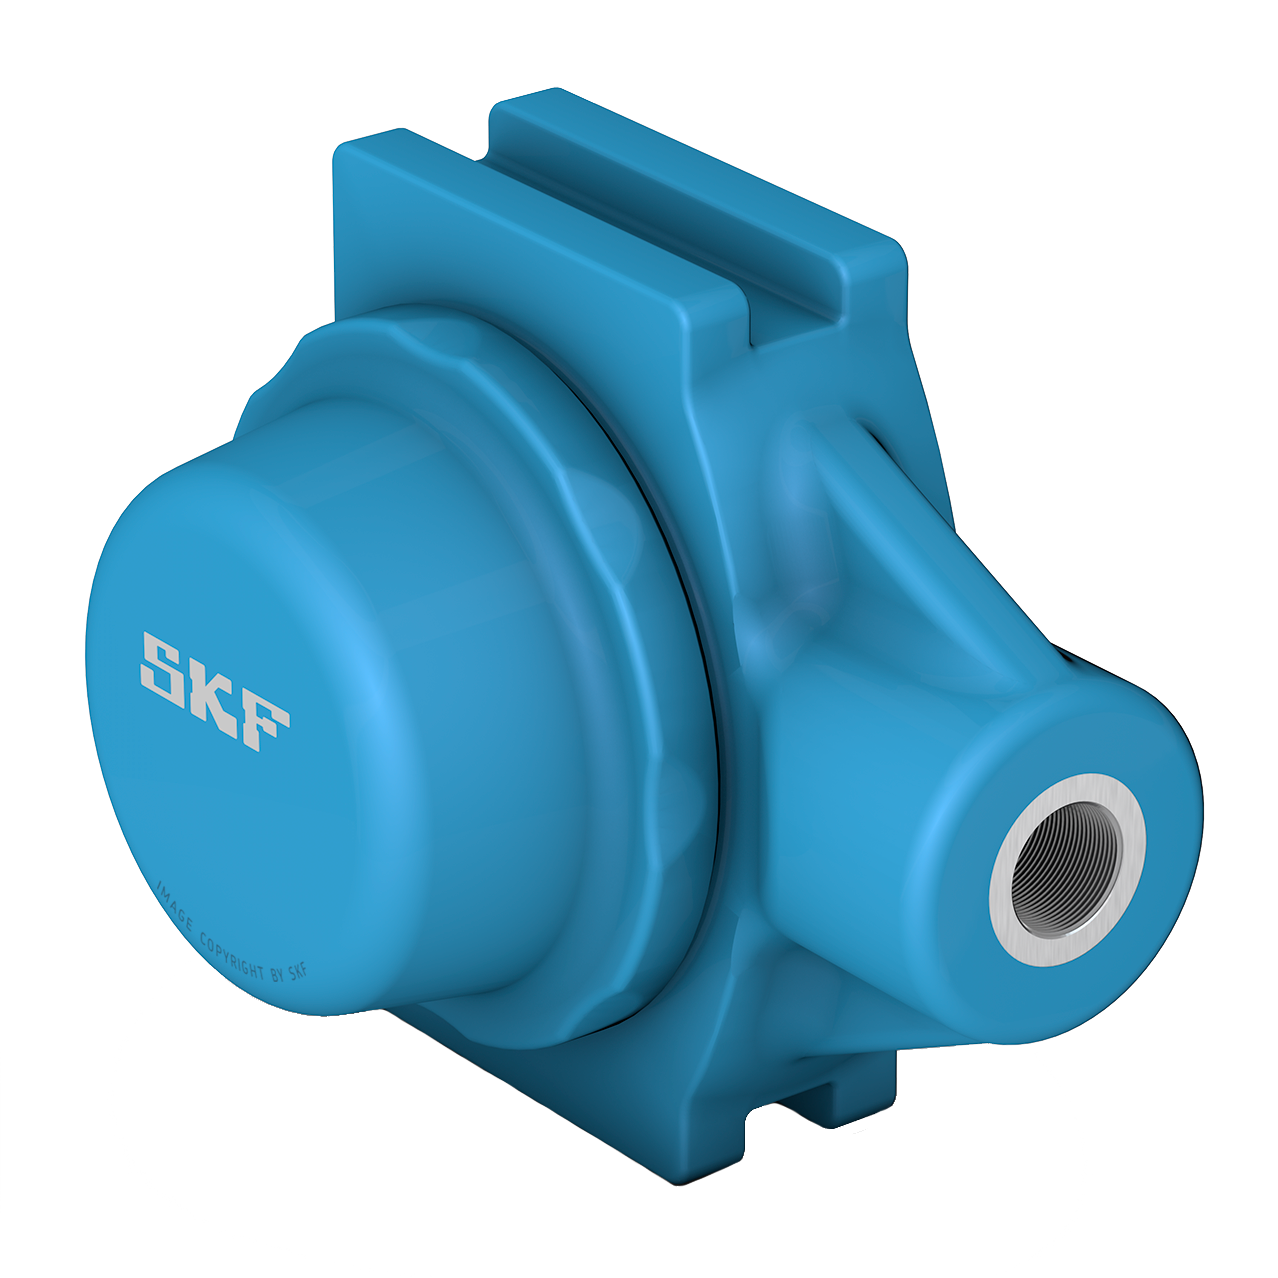 SKF Food line ball bearing units - Blue Range take-up design